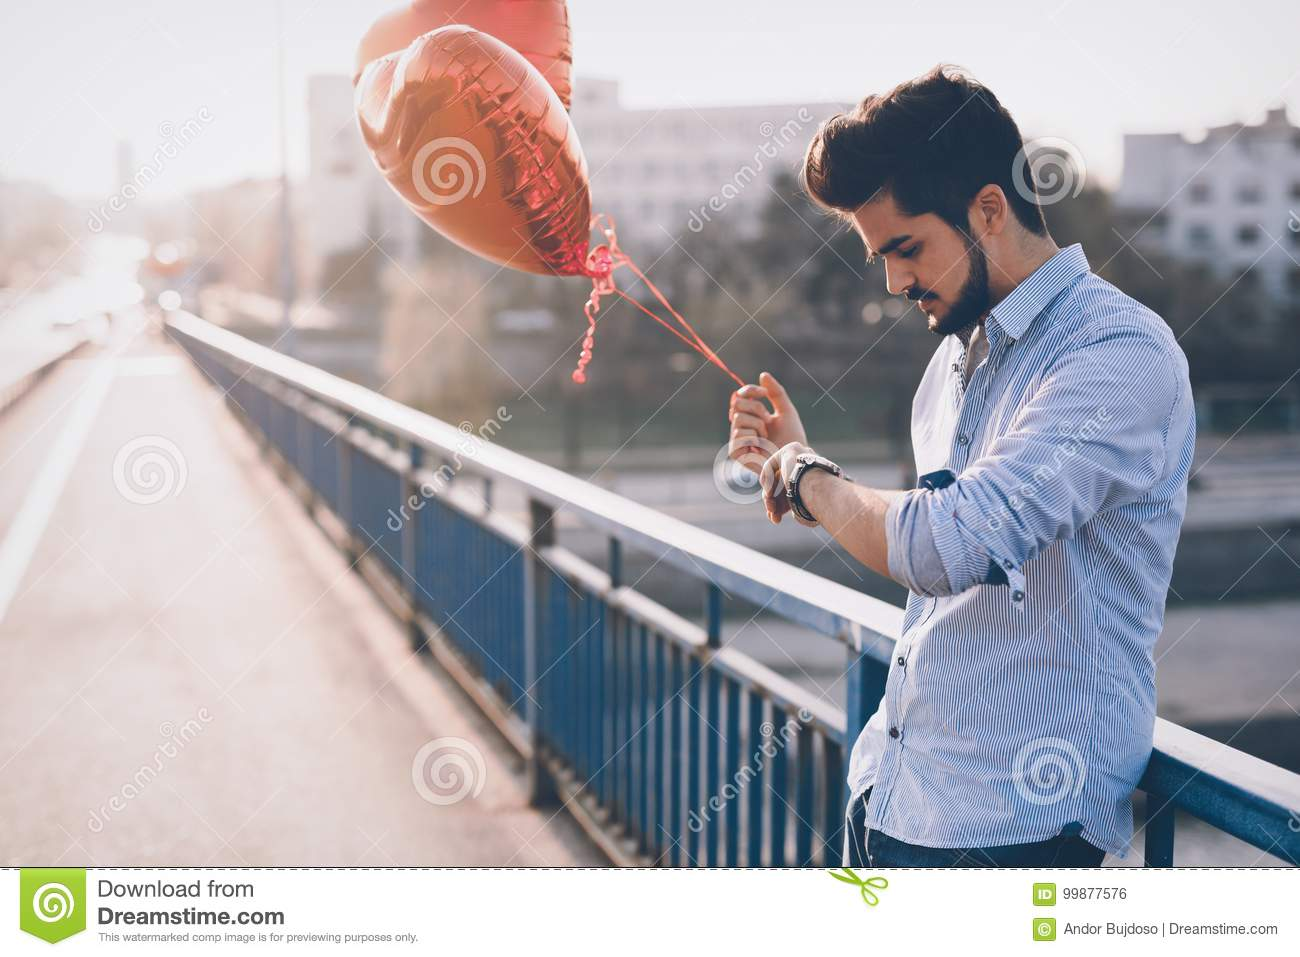 Sad Man Waiting For Date On Valentine Date Stock Photo - Image of